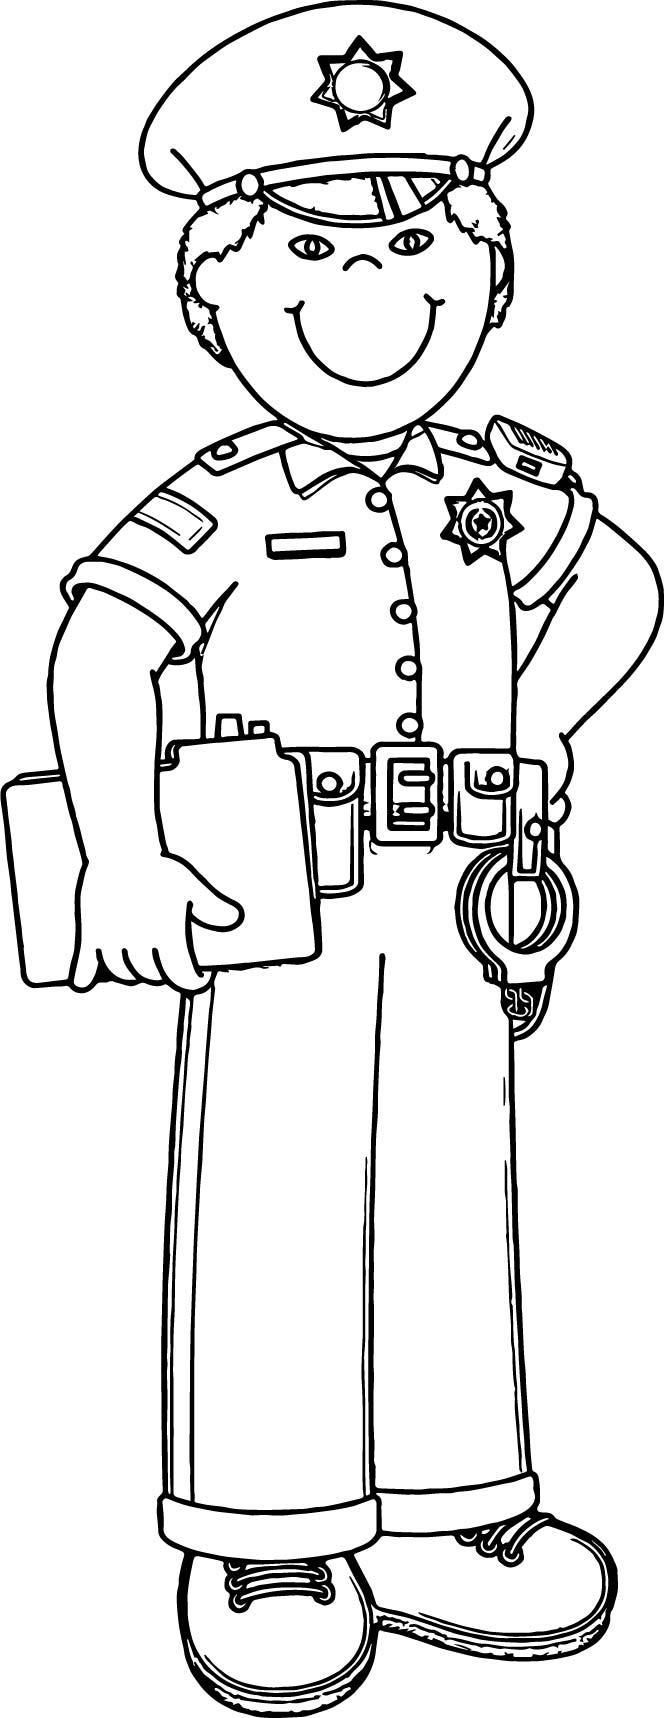 Policeman Coloring Pages Police